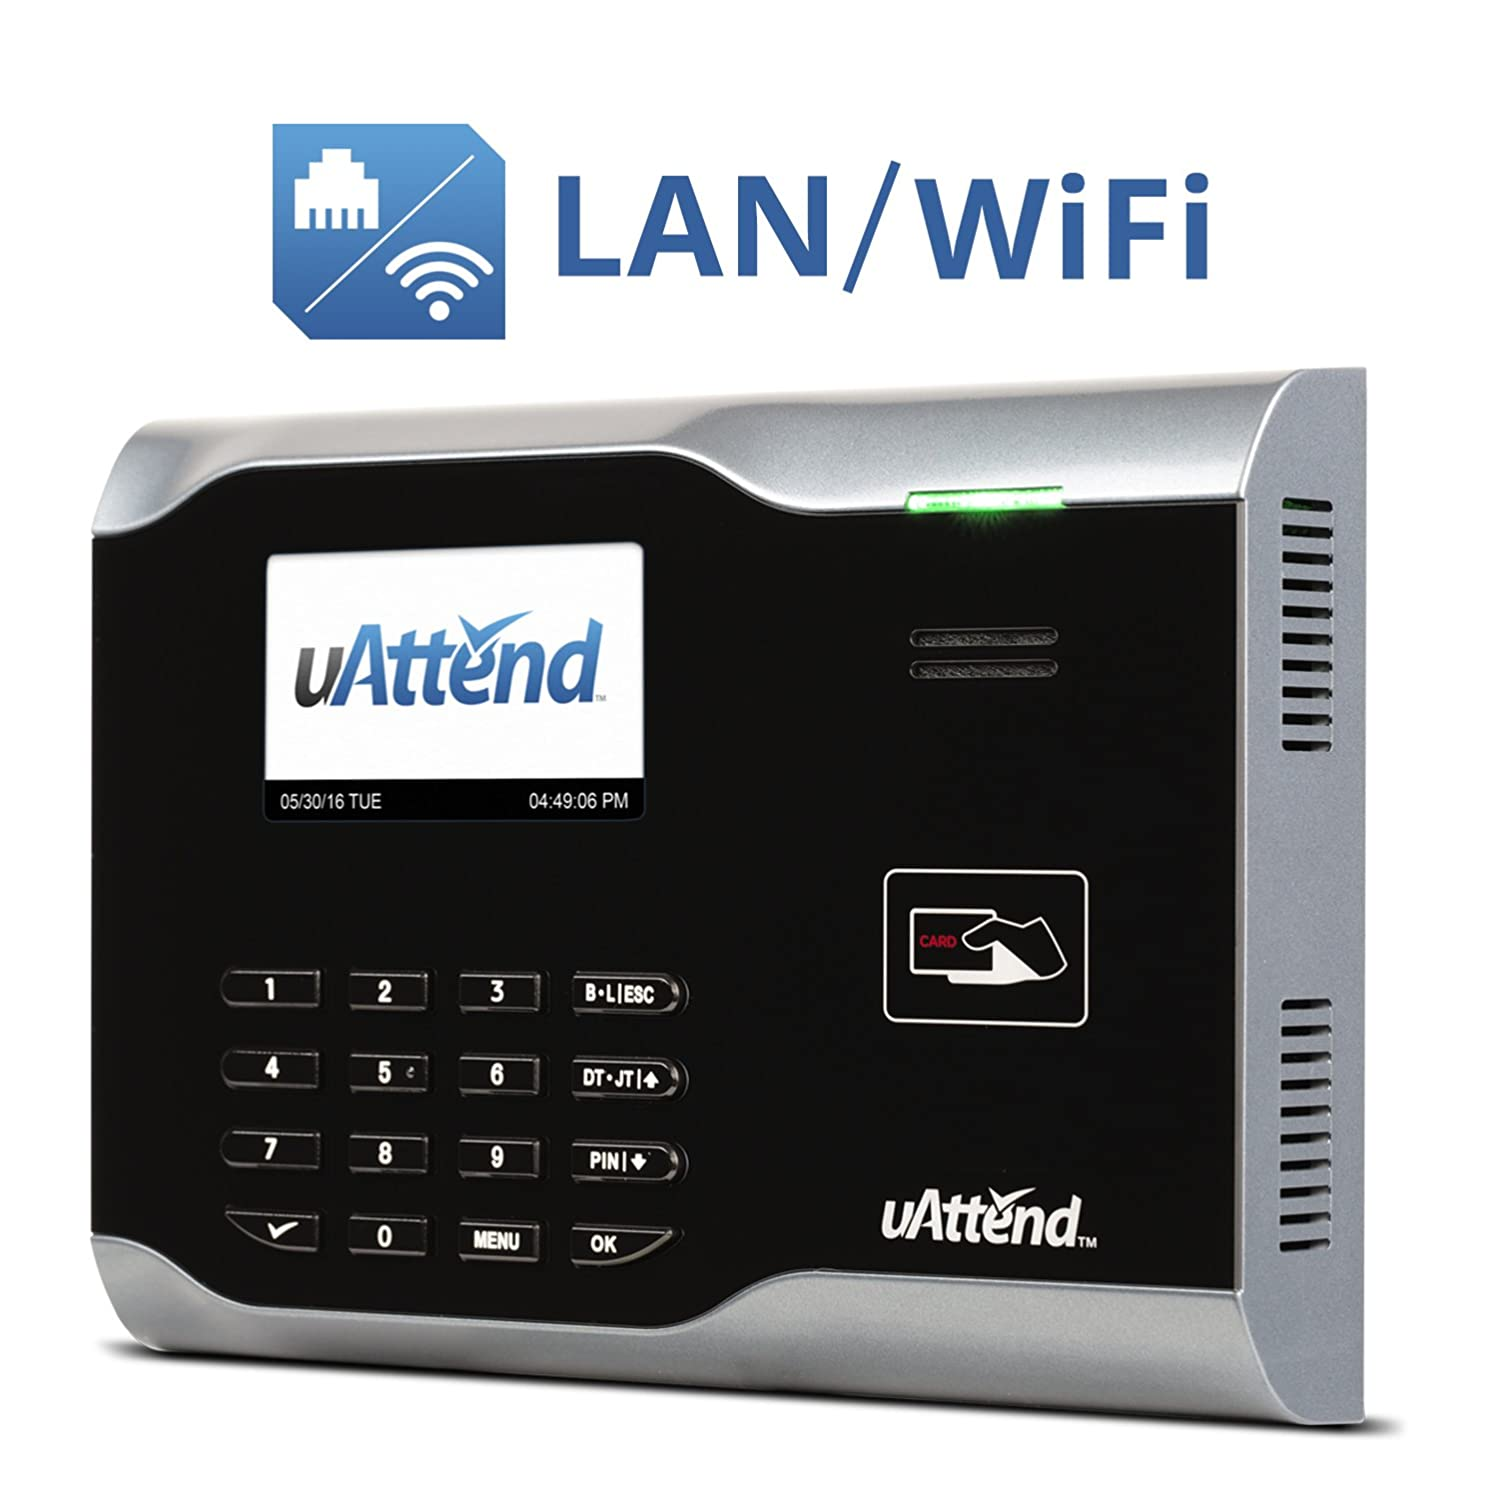 uAttend CB6500 Wi-Fi Employee Management Time Clock Processing Point Inc.